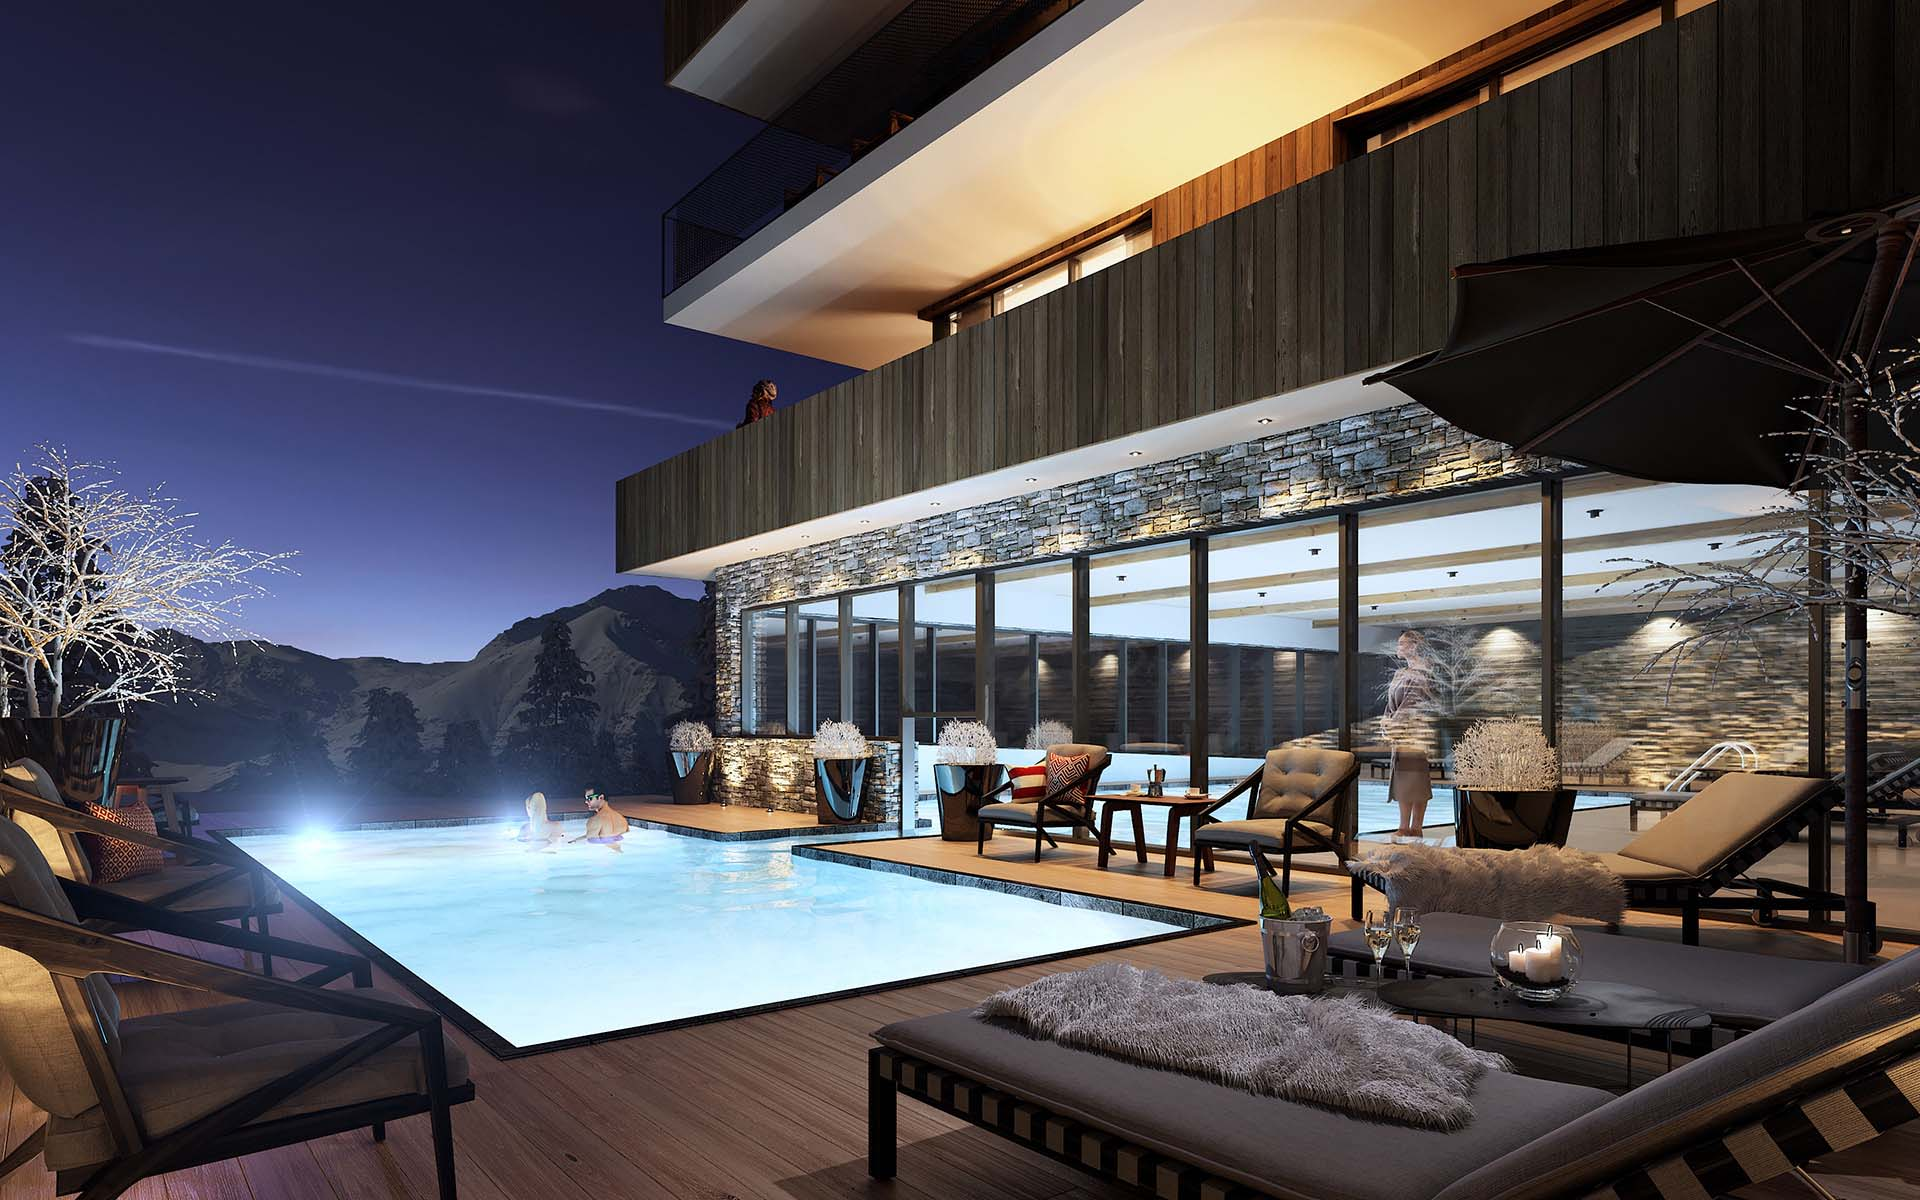 3D Perspective of a luxurious swimming pool created by a 3D marketing agency.